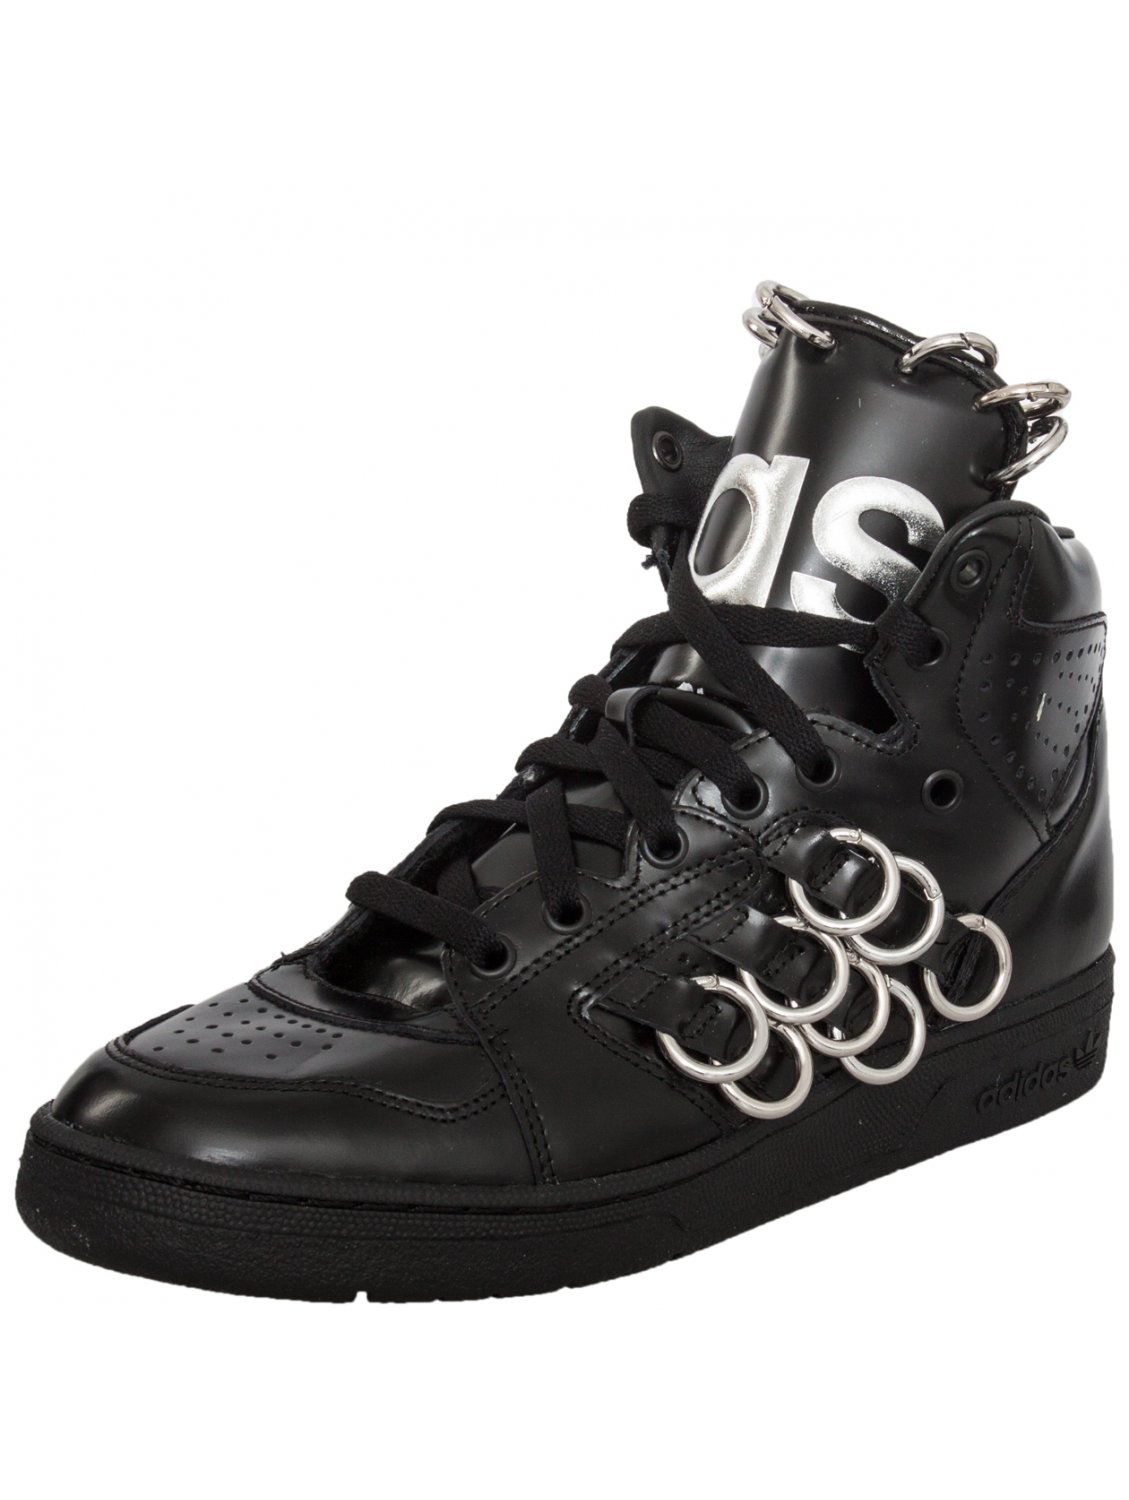 bcc05baa0bdb In For Jeremy Scott Adidas Black High Trainers Ring Instinct Top 4zCfwqnx5F